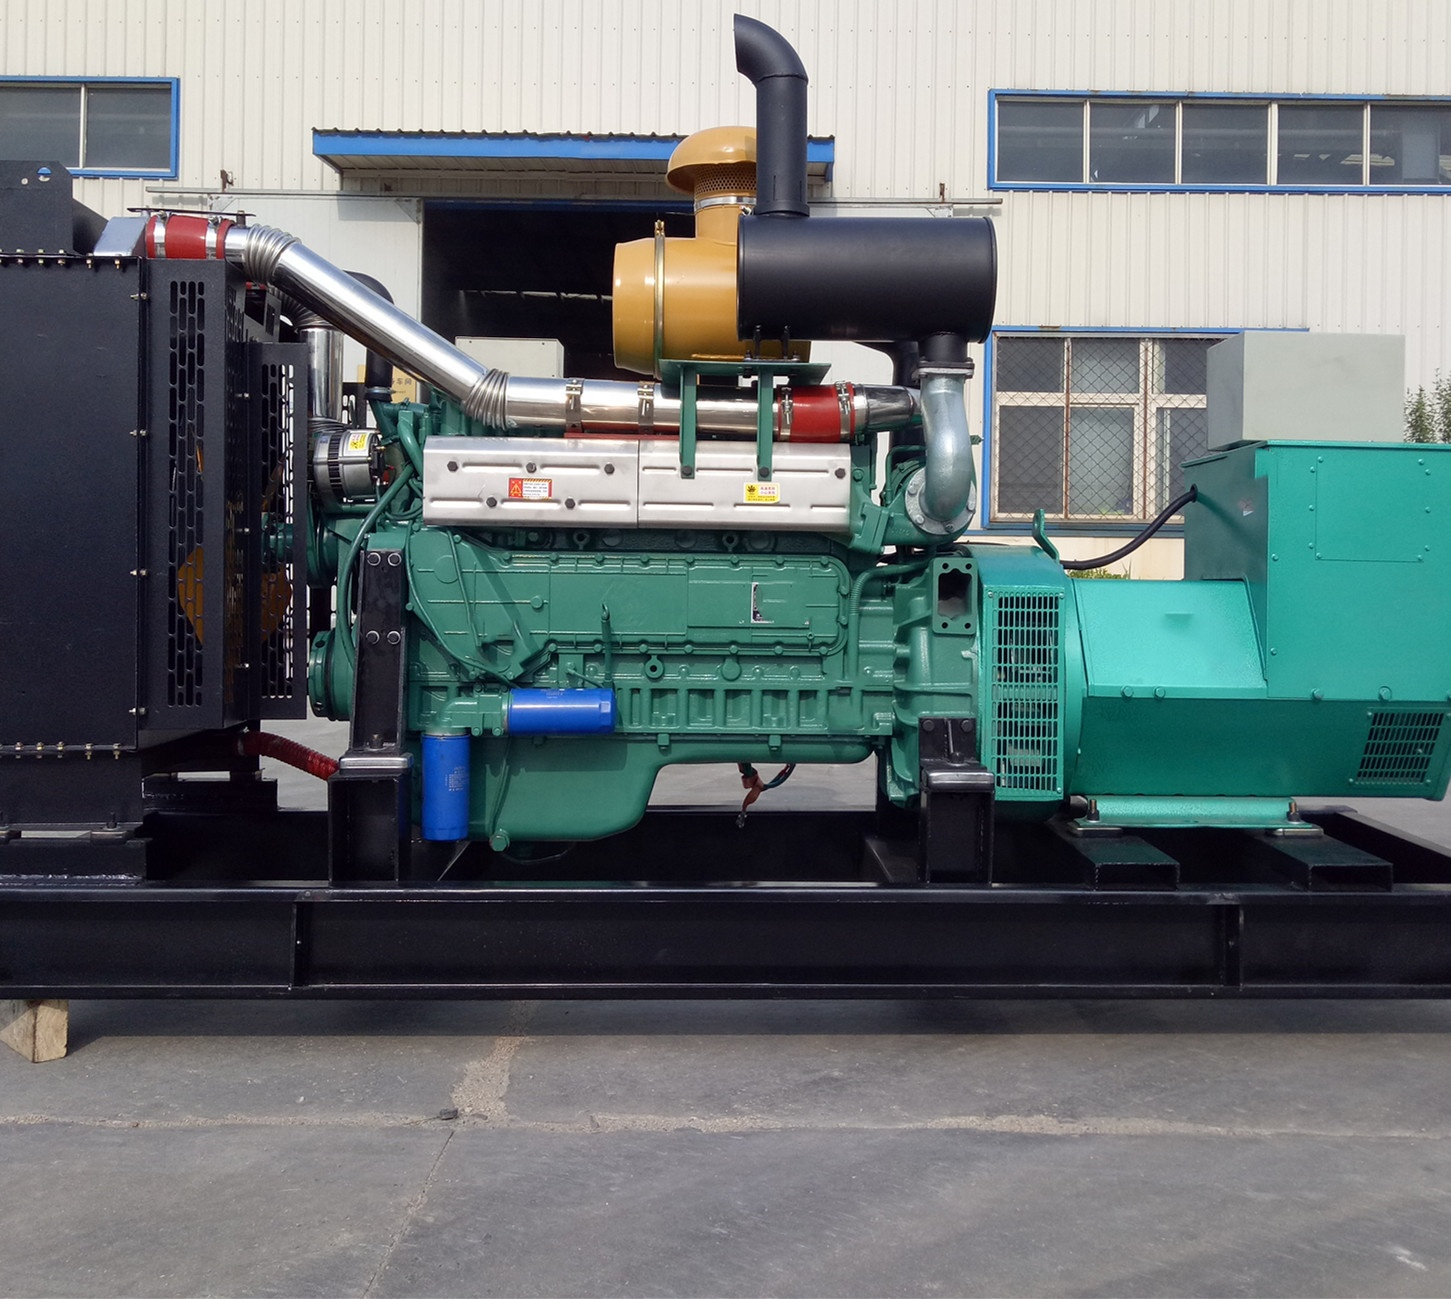 2019 Factory Price High Quality <strong>100</strong> kva Super Silent Open-shelf Permanent Magnet 400kva Diesel <strong>Engine</strong> Generator Set Price